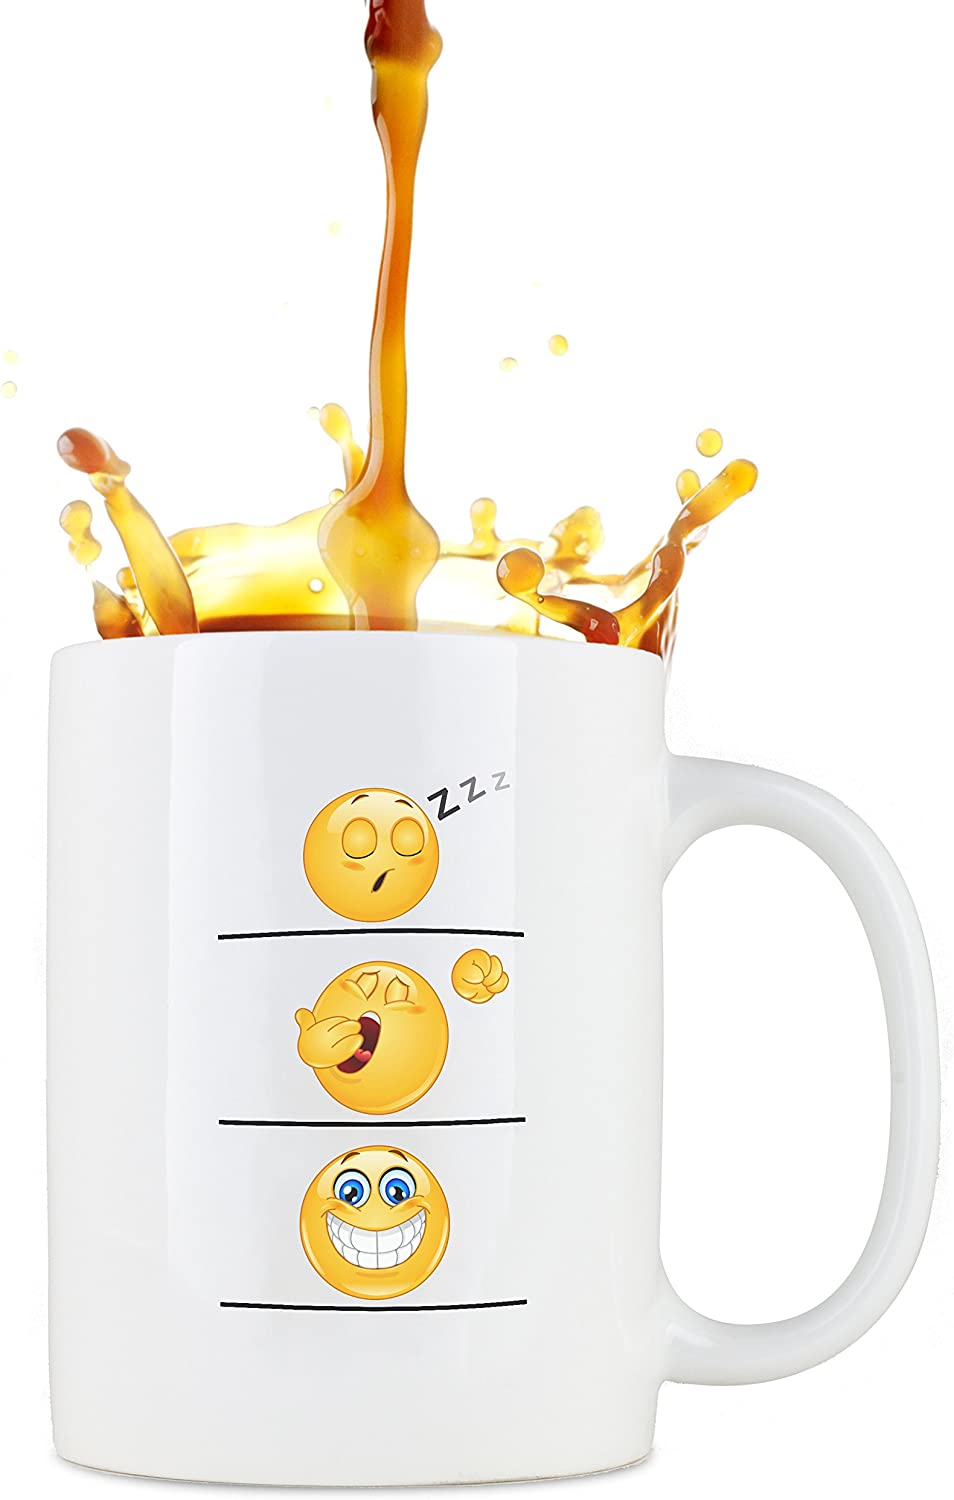 Whimsical Gift World Funny Coffee Cup/Mug, Emoji Smiley Face, Leak Proof with Large Handle, Humorous and Unique Novelty Gag Gift for Moms, Dads, Boys, Girls, Boss, Office and Others, 16 oz, Large